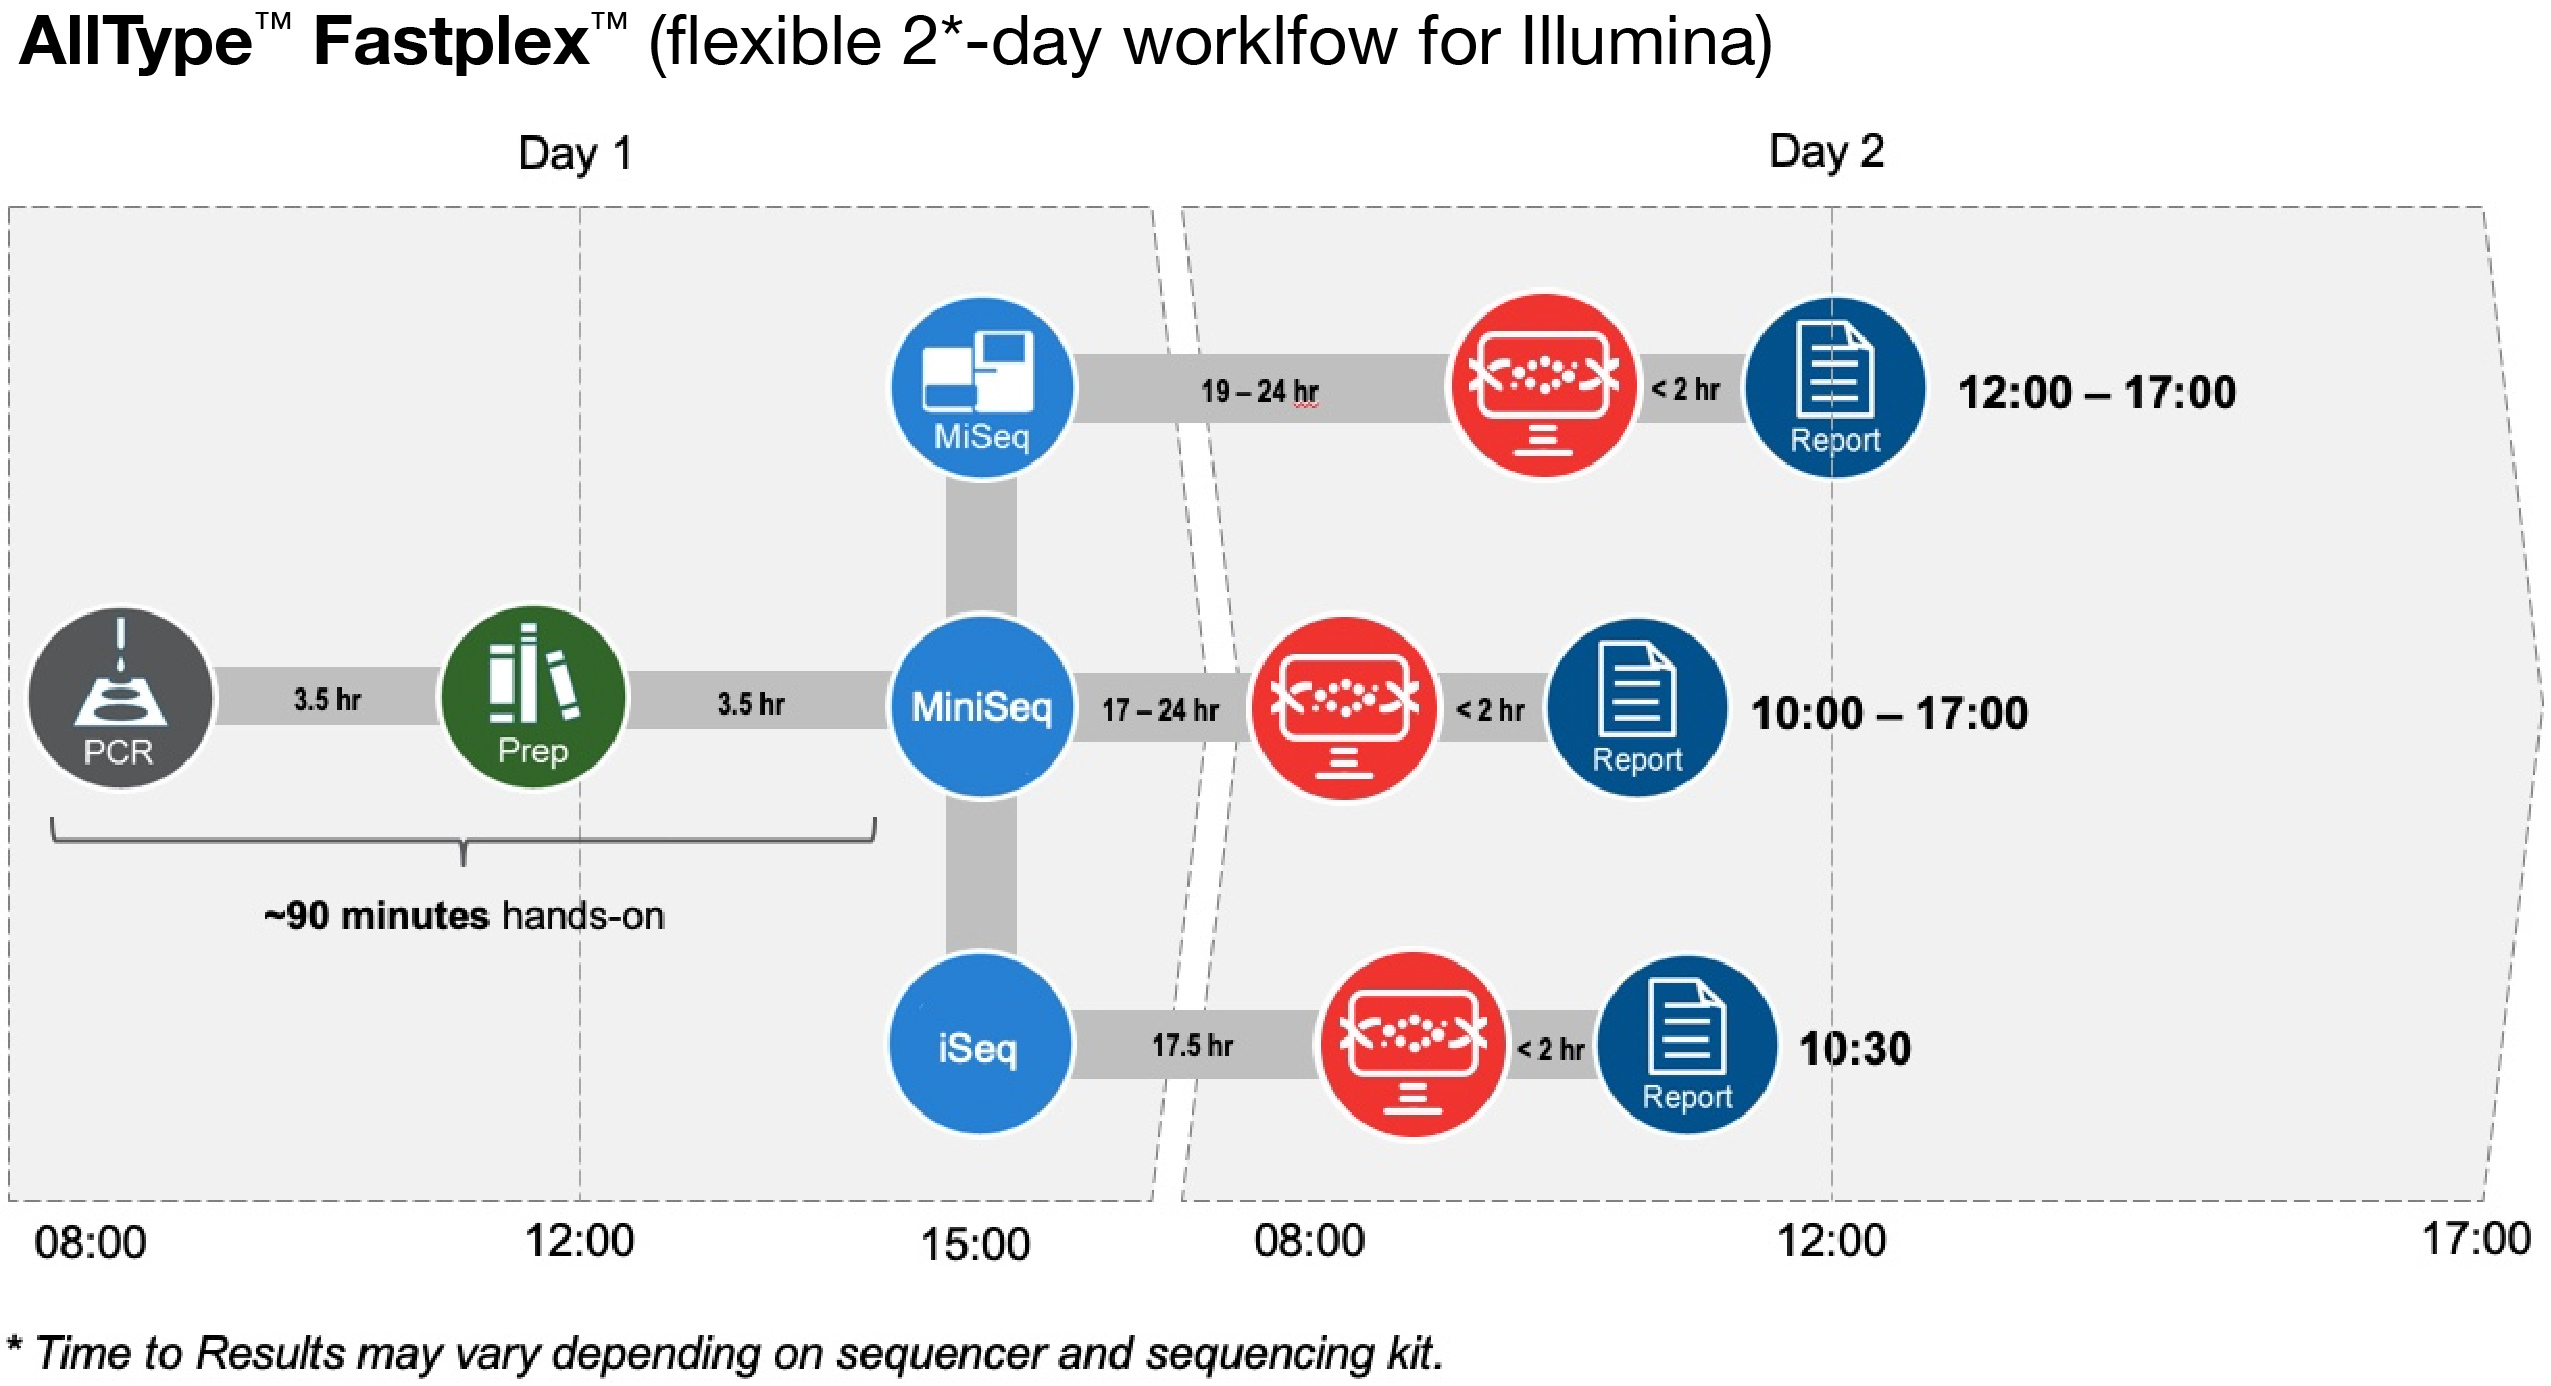 AllType FASTplex flexible 2-day workflow for Illumina